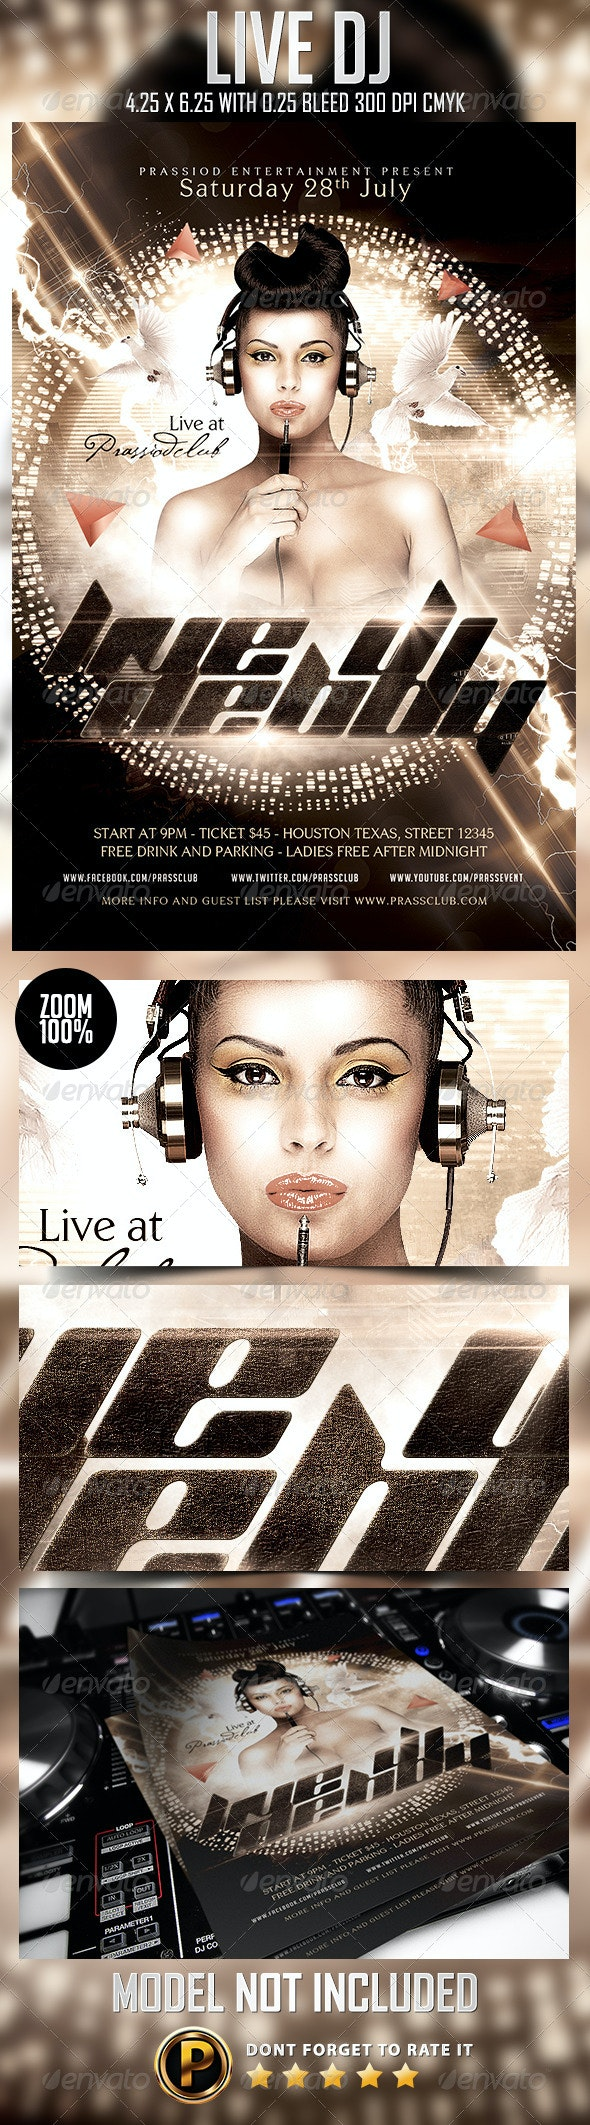 Live DJ Flyer Template - Clubs & Parties Events